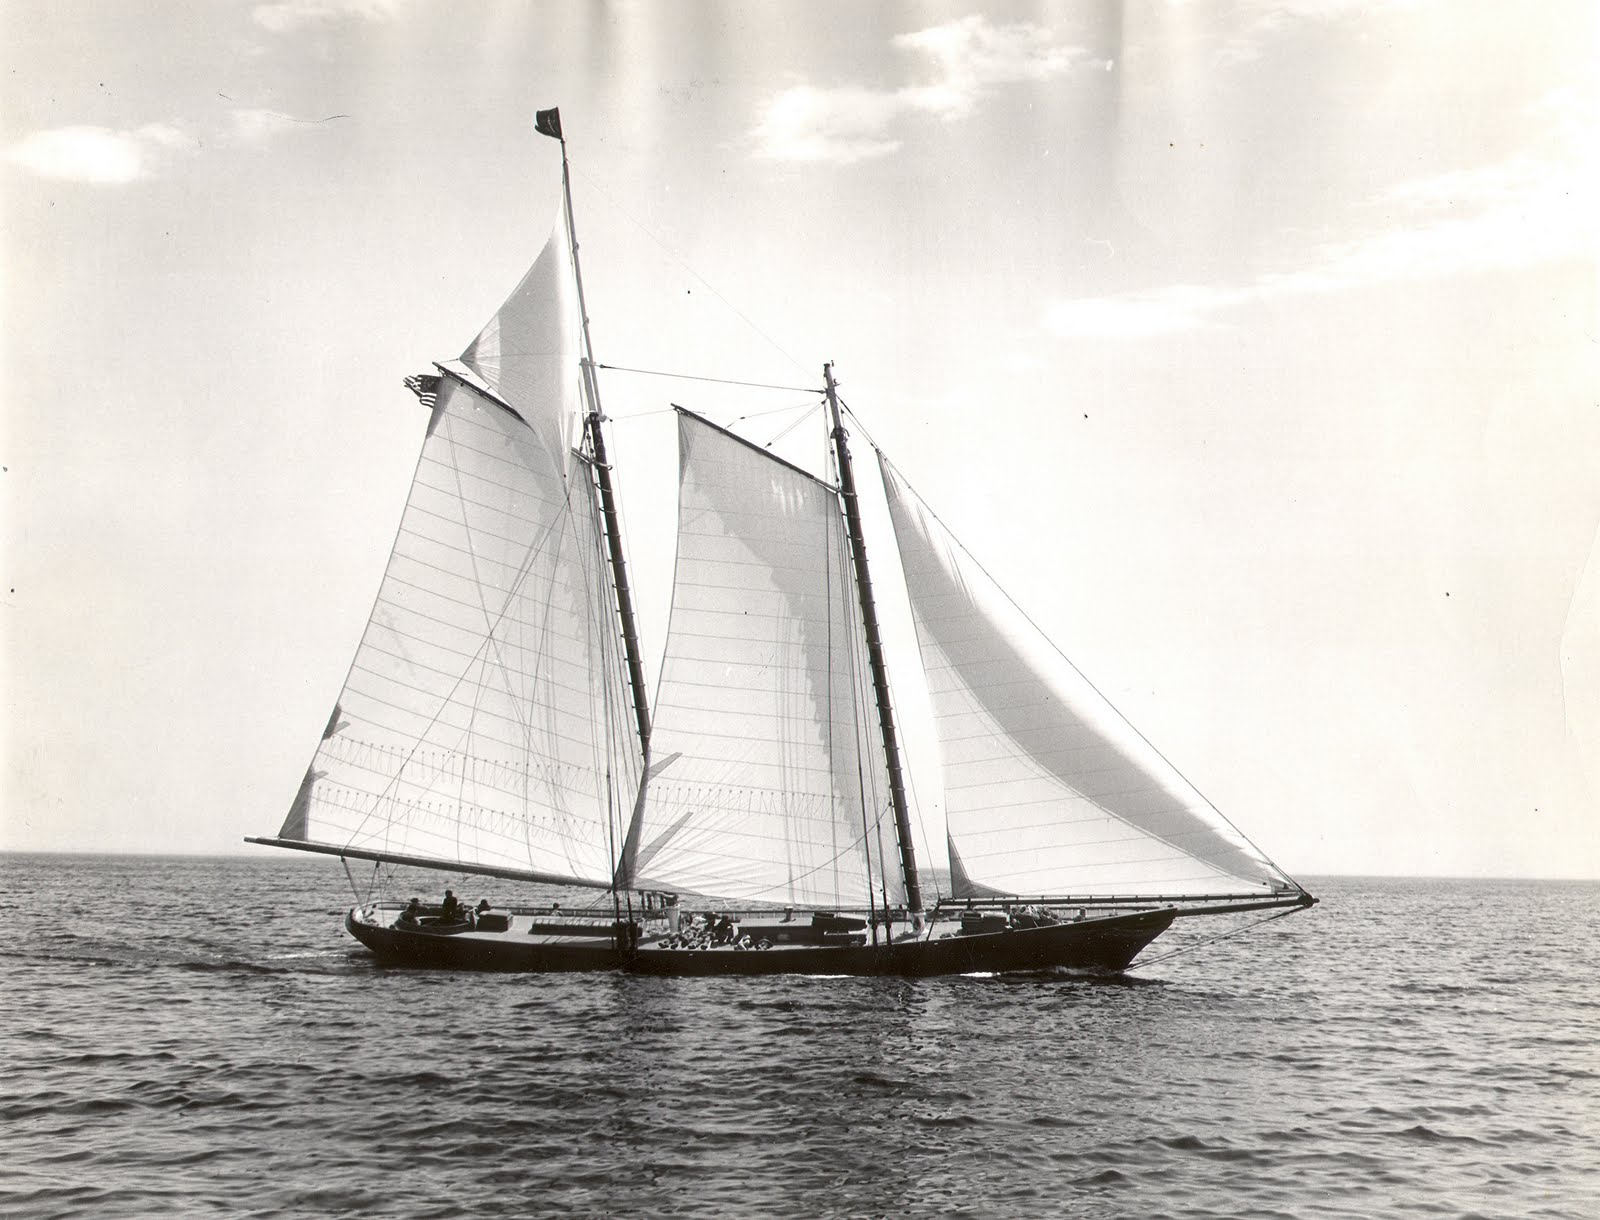 This replica of America was built for Rudolph J. Schaefer, Jr. by Goudy & Stevens Shipyard of Boothbay, Maine on 1967